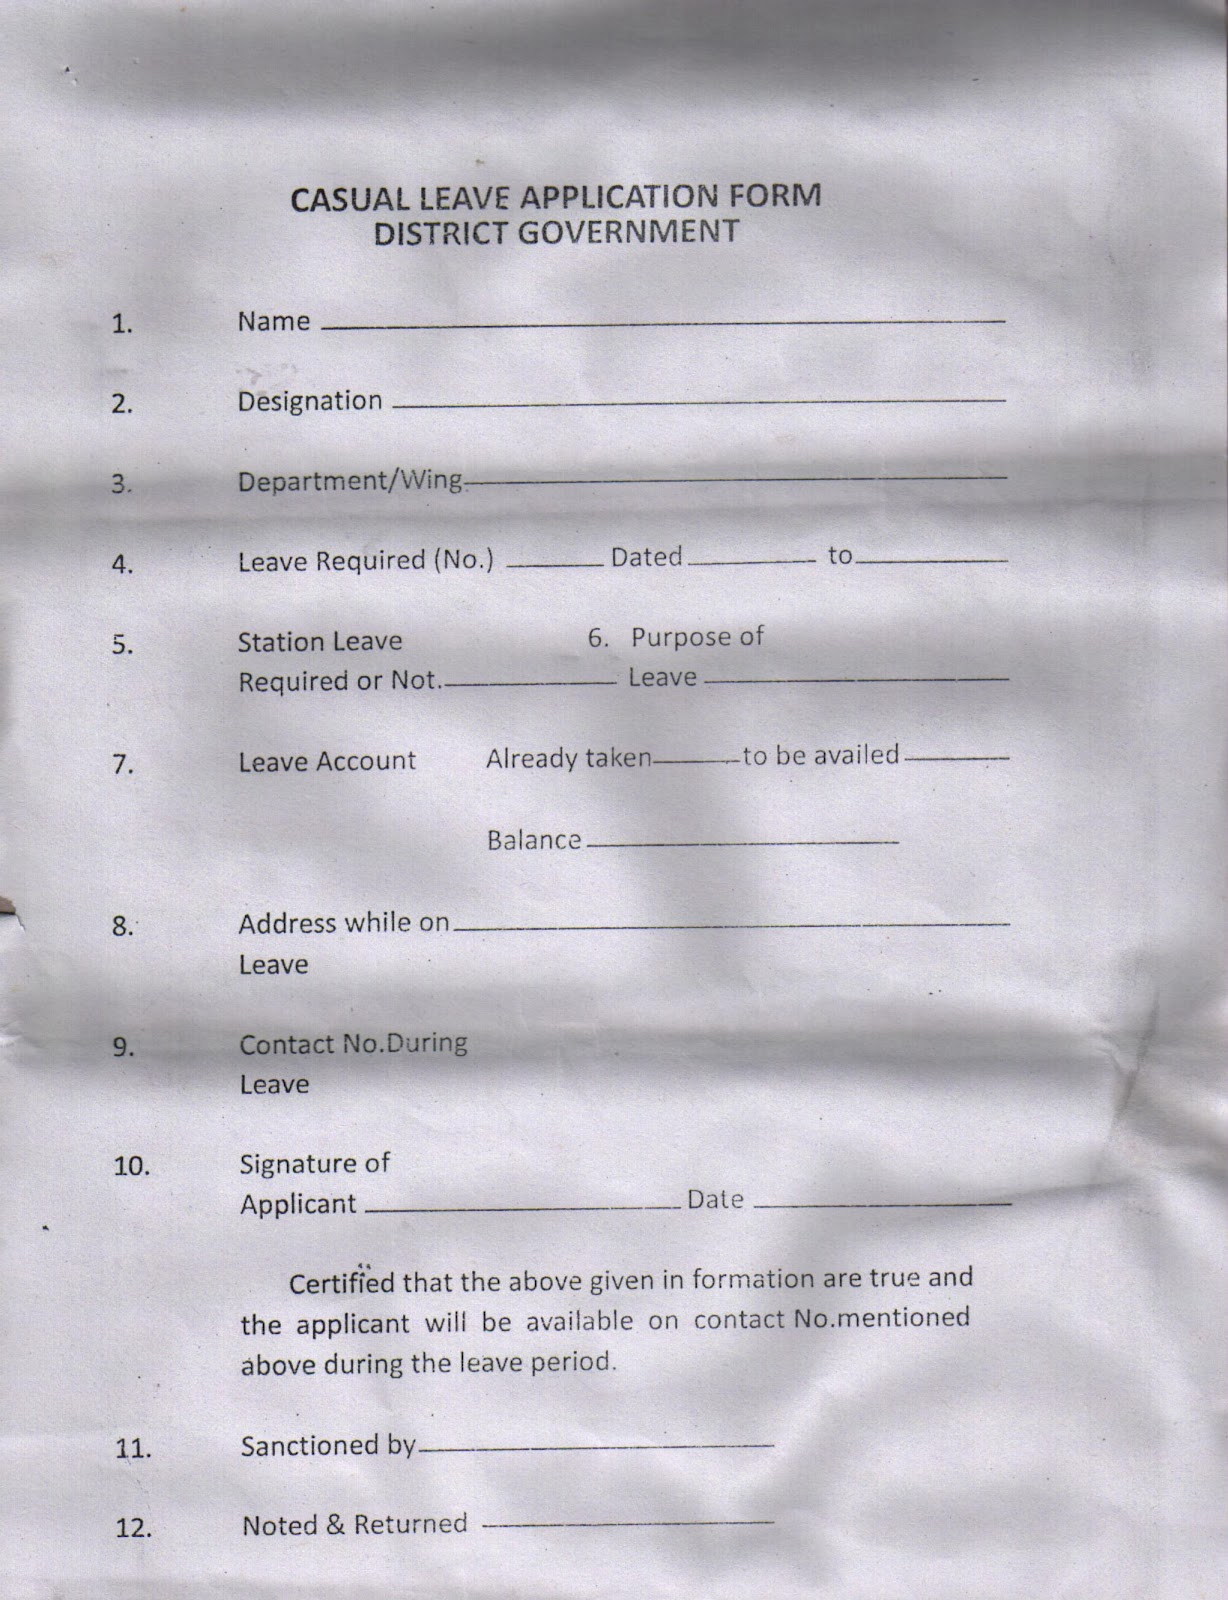 Punjab Education: Casual Leave Form